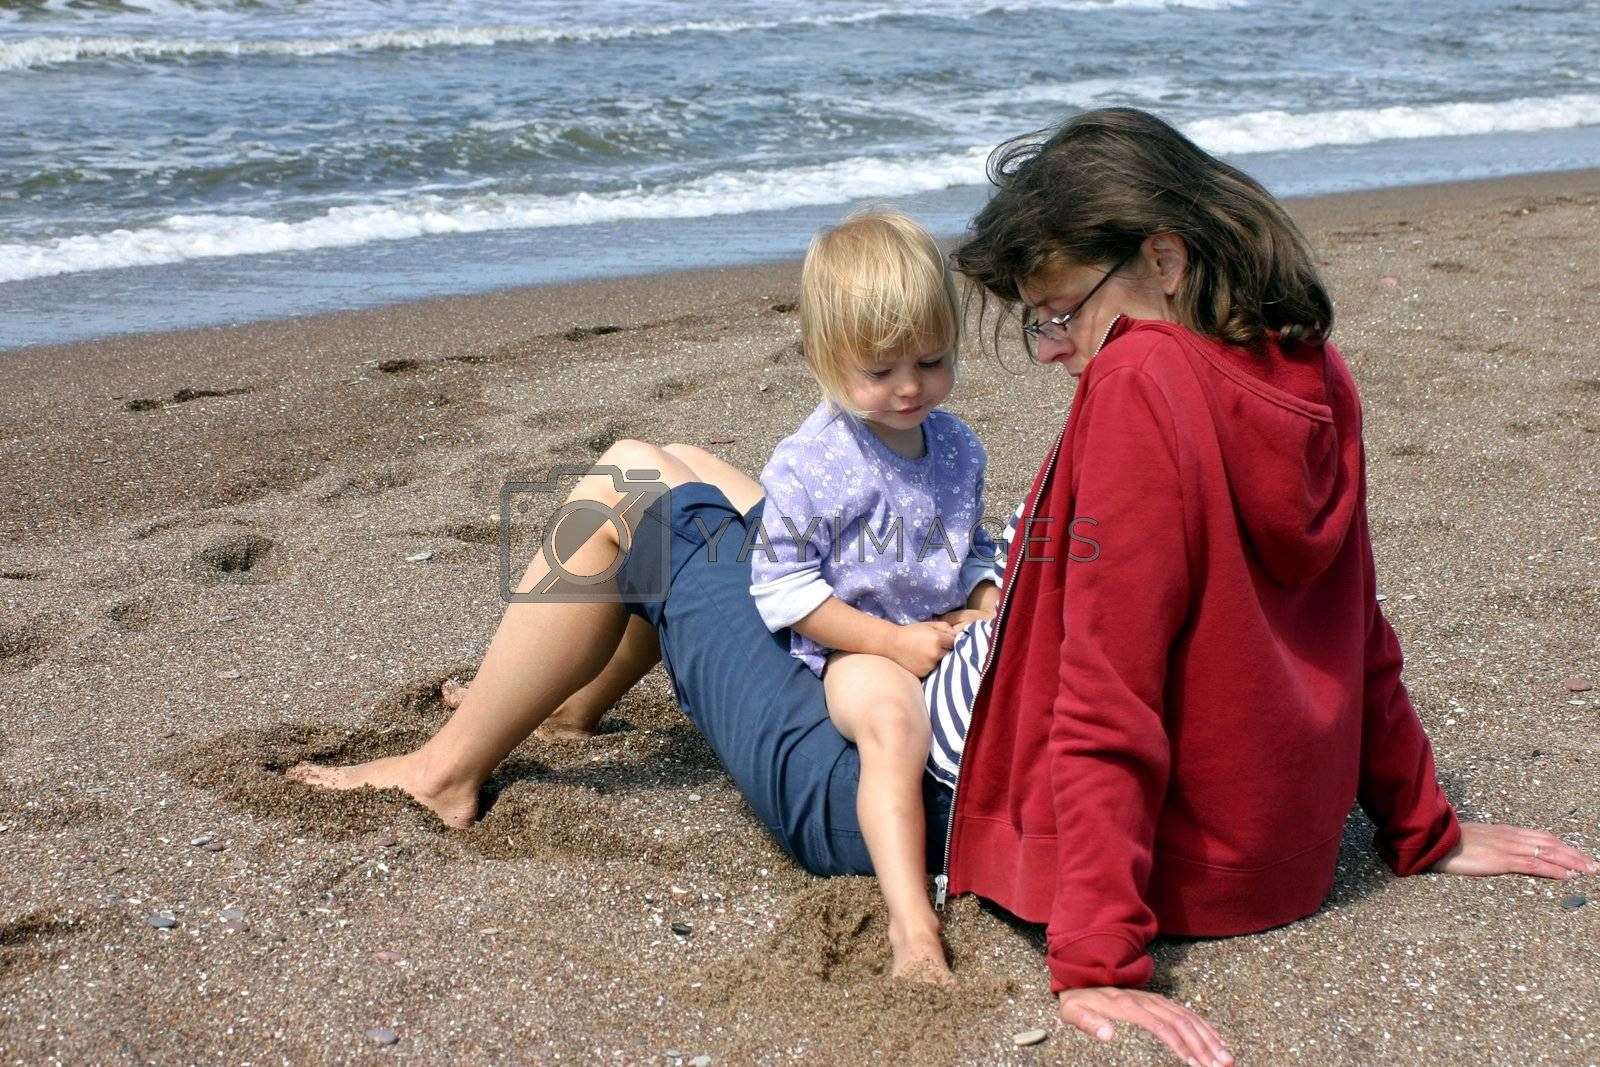 Mother and her little daughter sitting on the beach